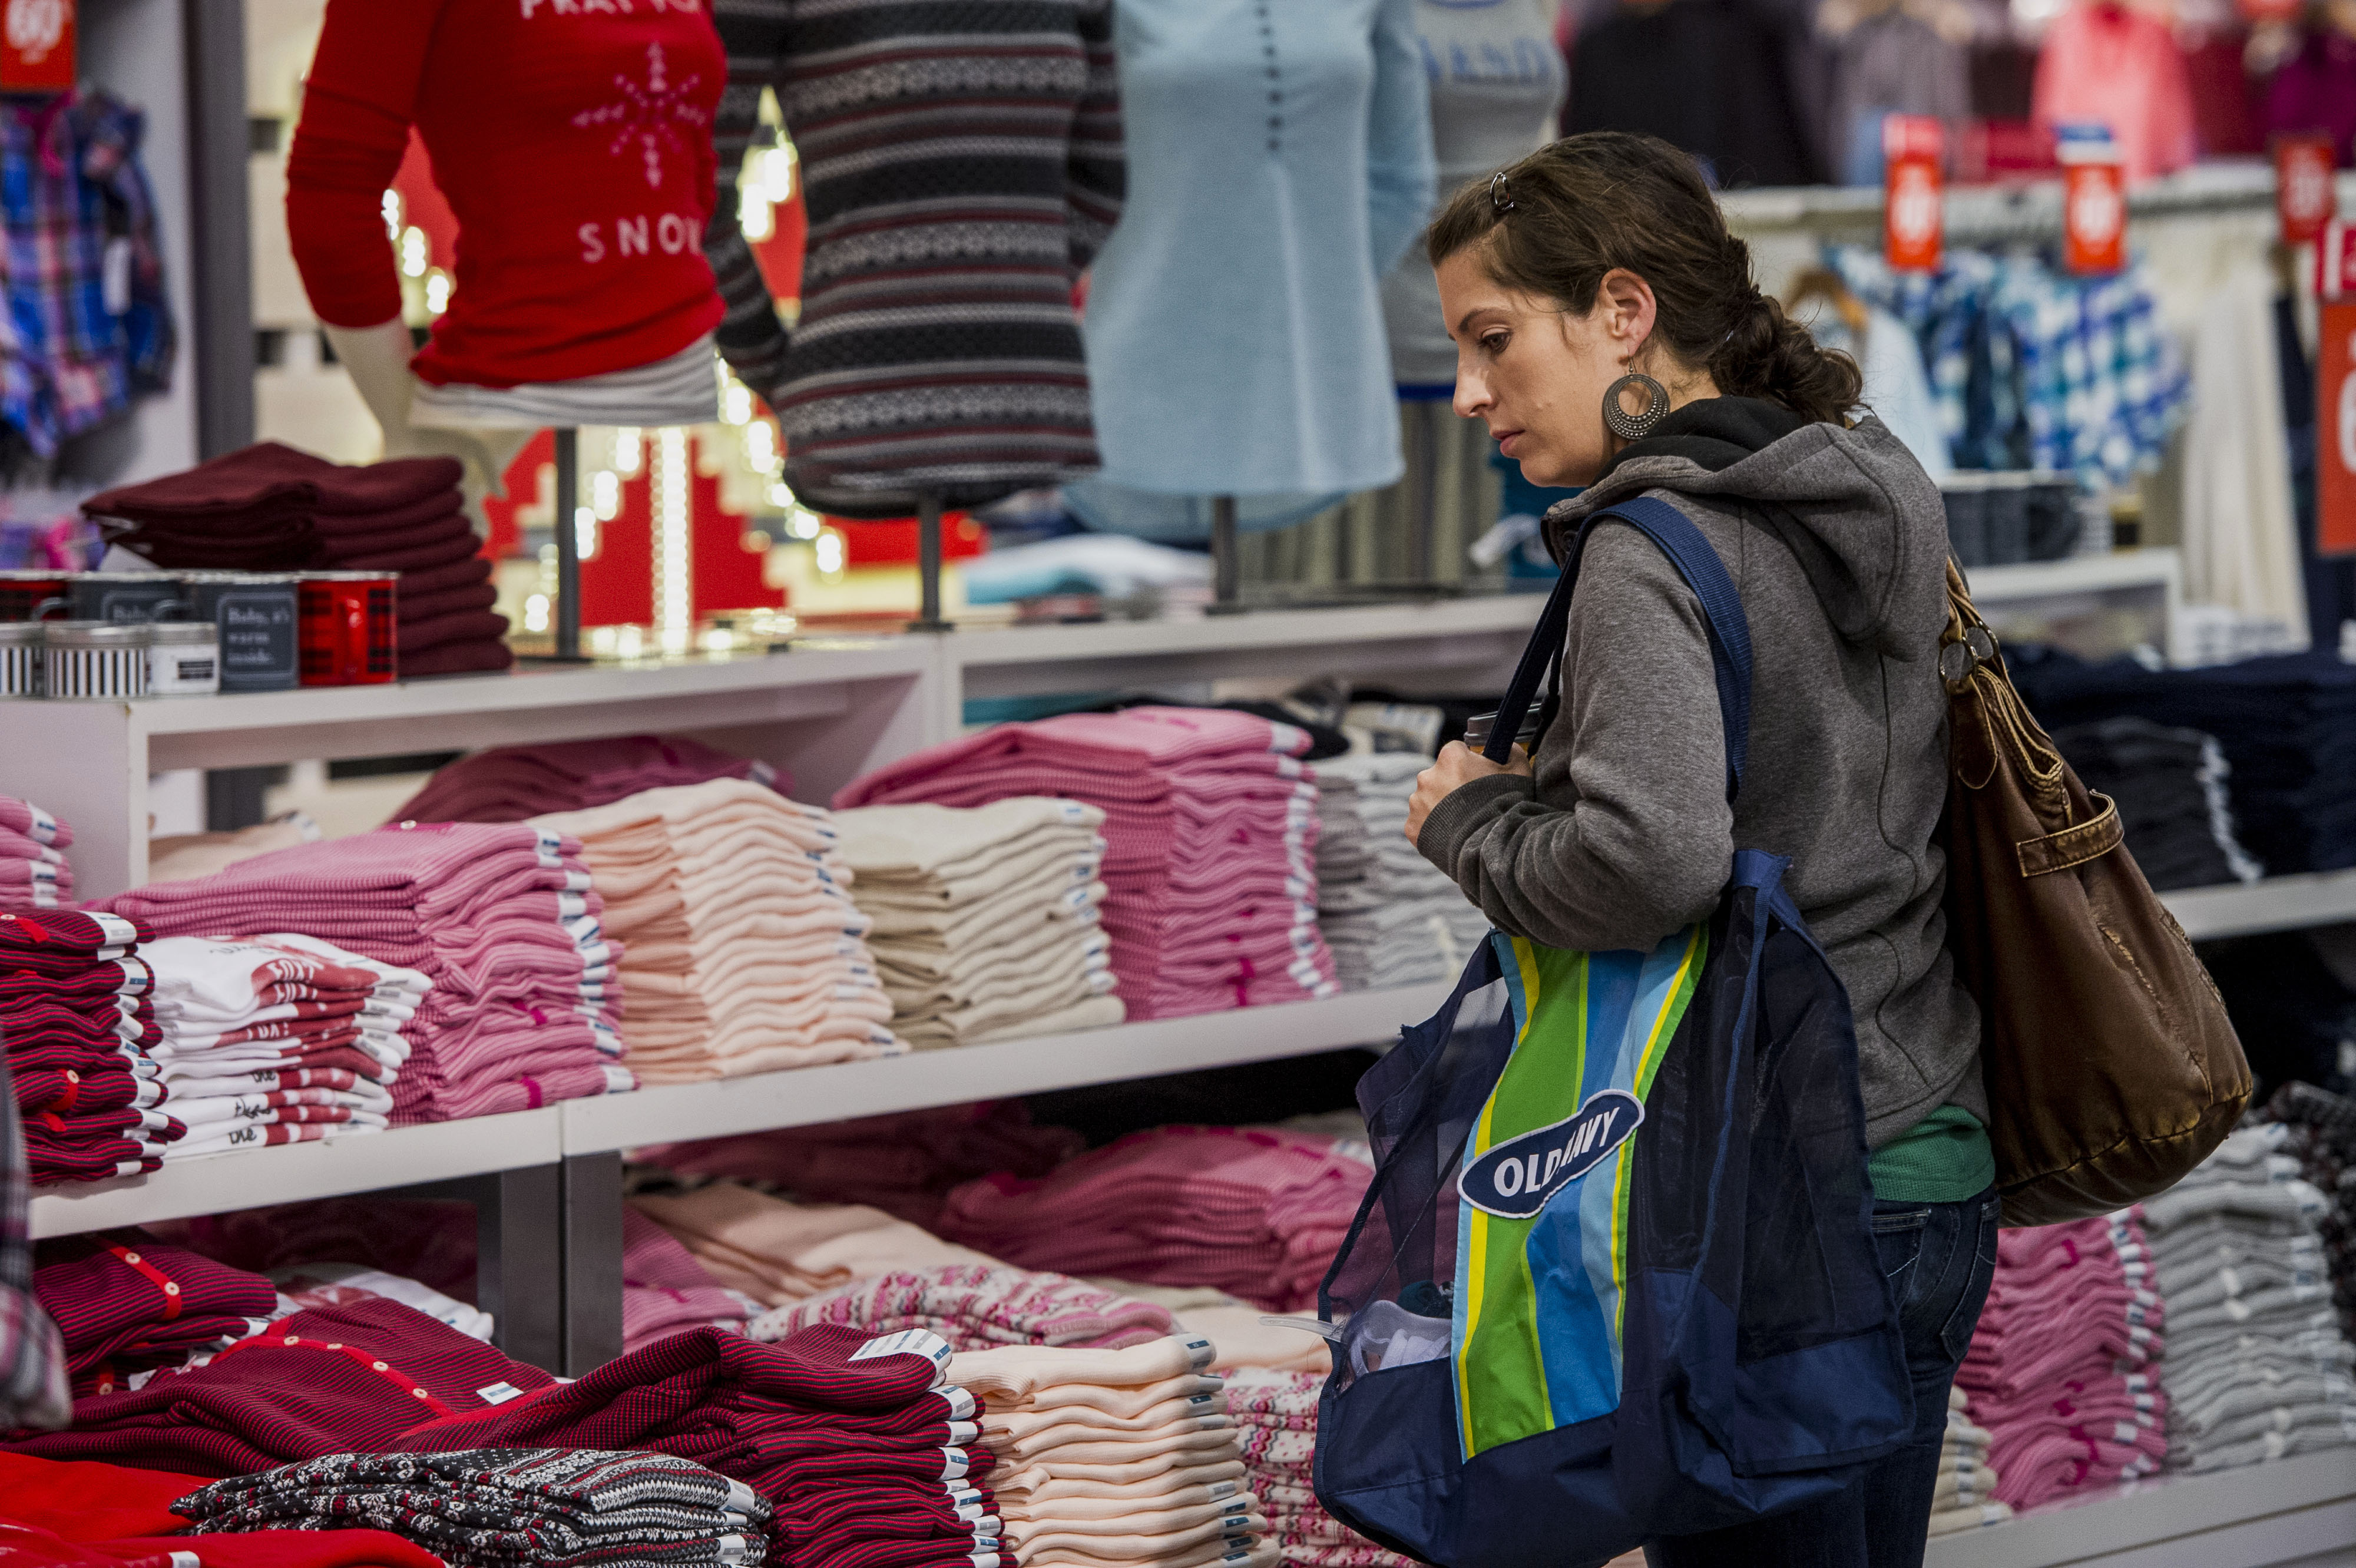 Operations Inside An Old Navy Inc. Store As Retail Sales Rise